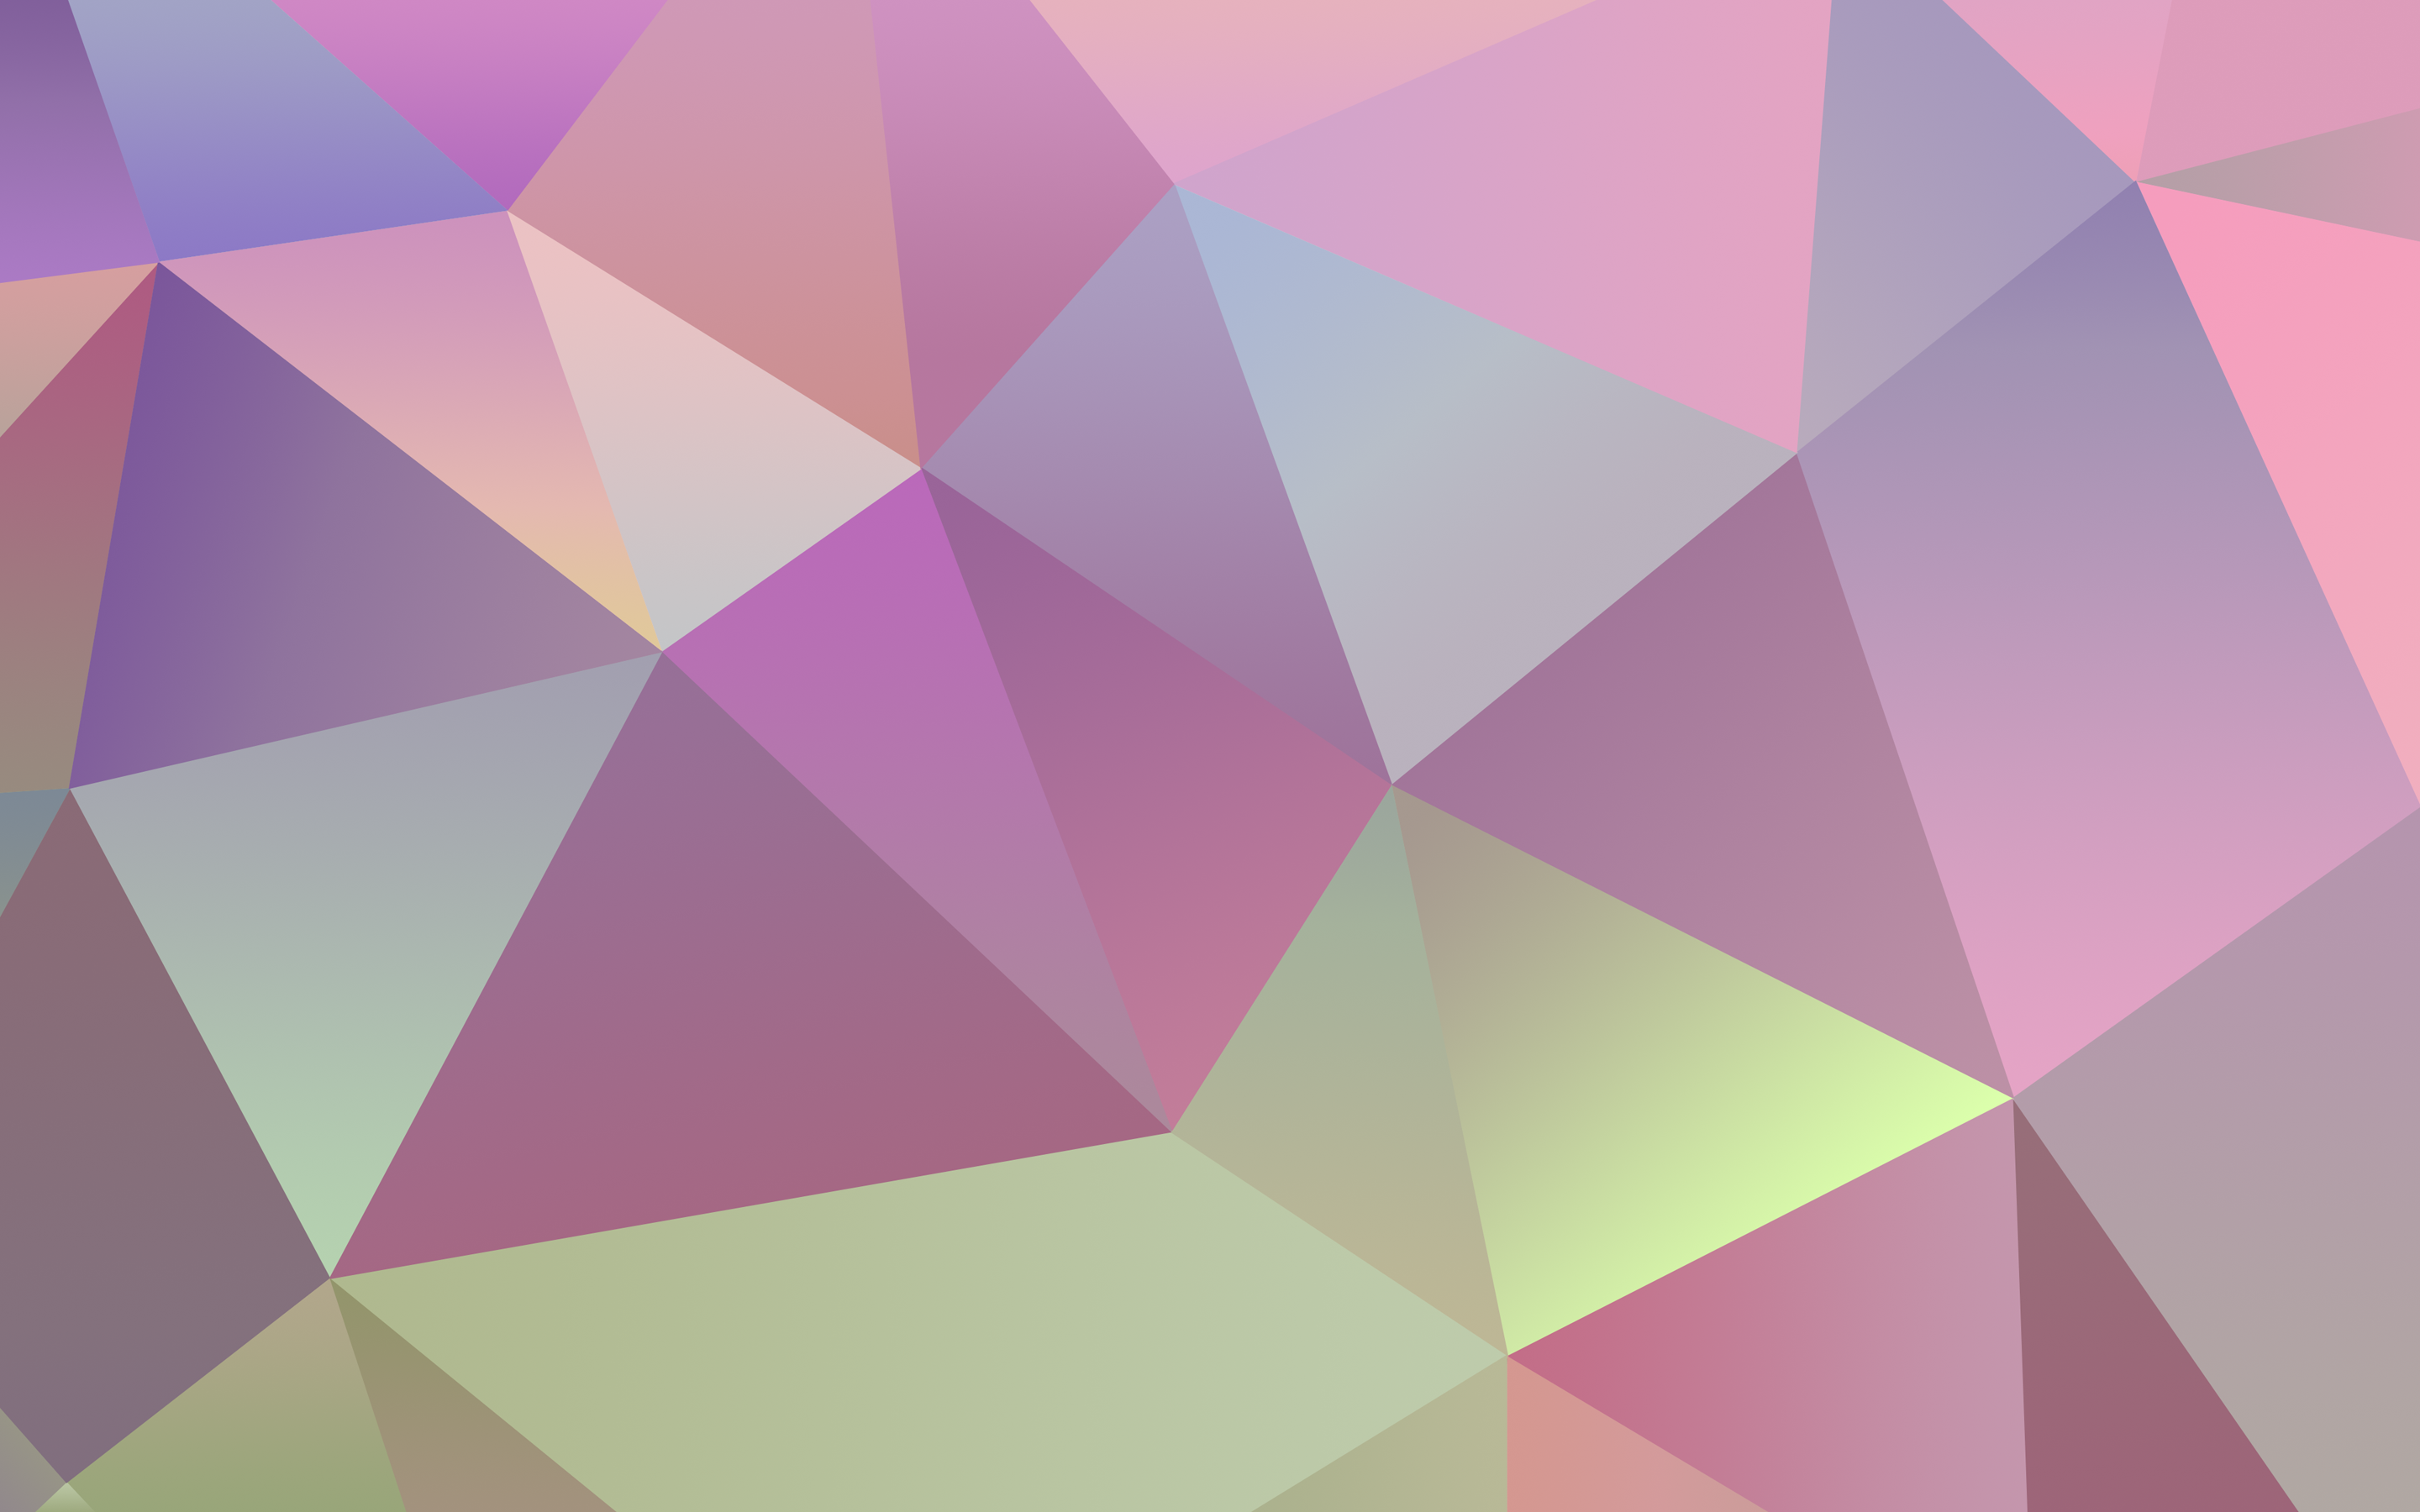 2048x1152 Wallpapers, Pastel